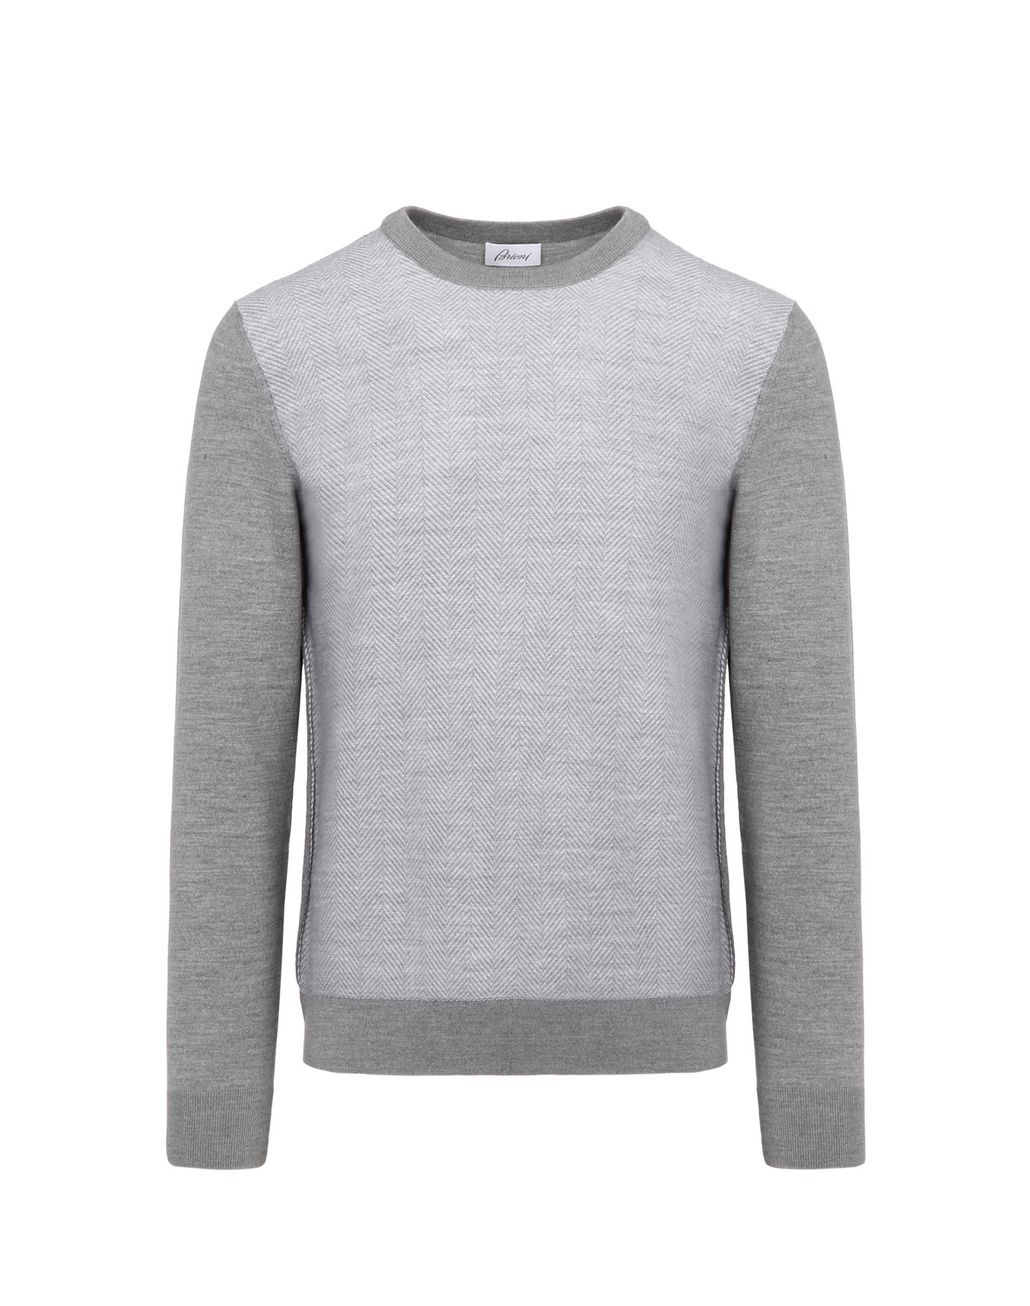 BRIONI Gray Herringbone Jacquard Sweater Knitwear Man f